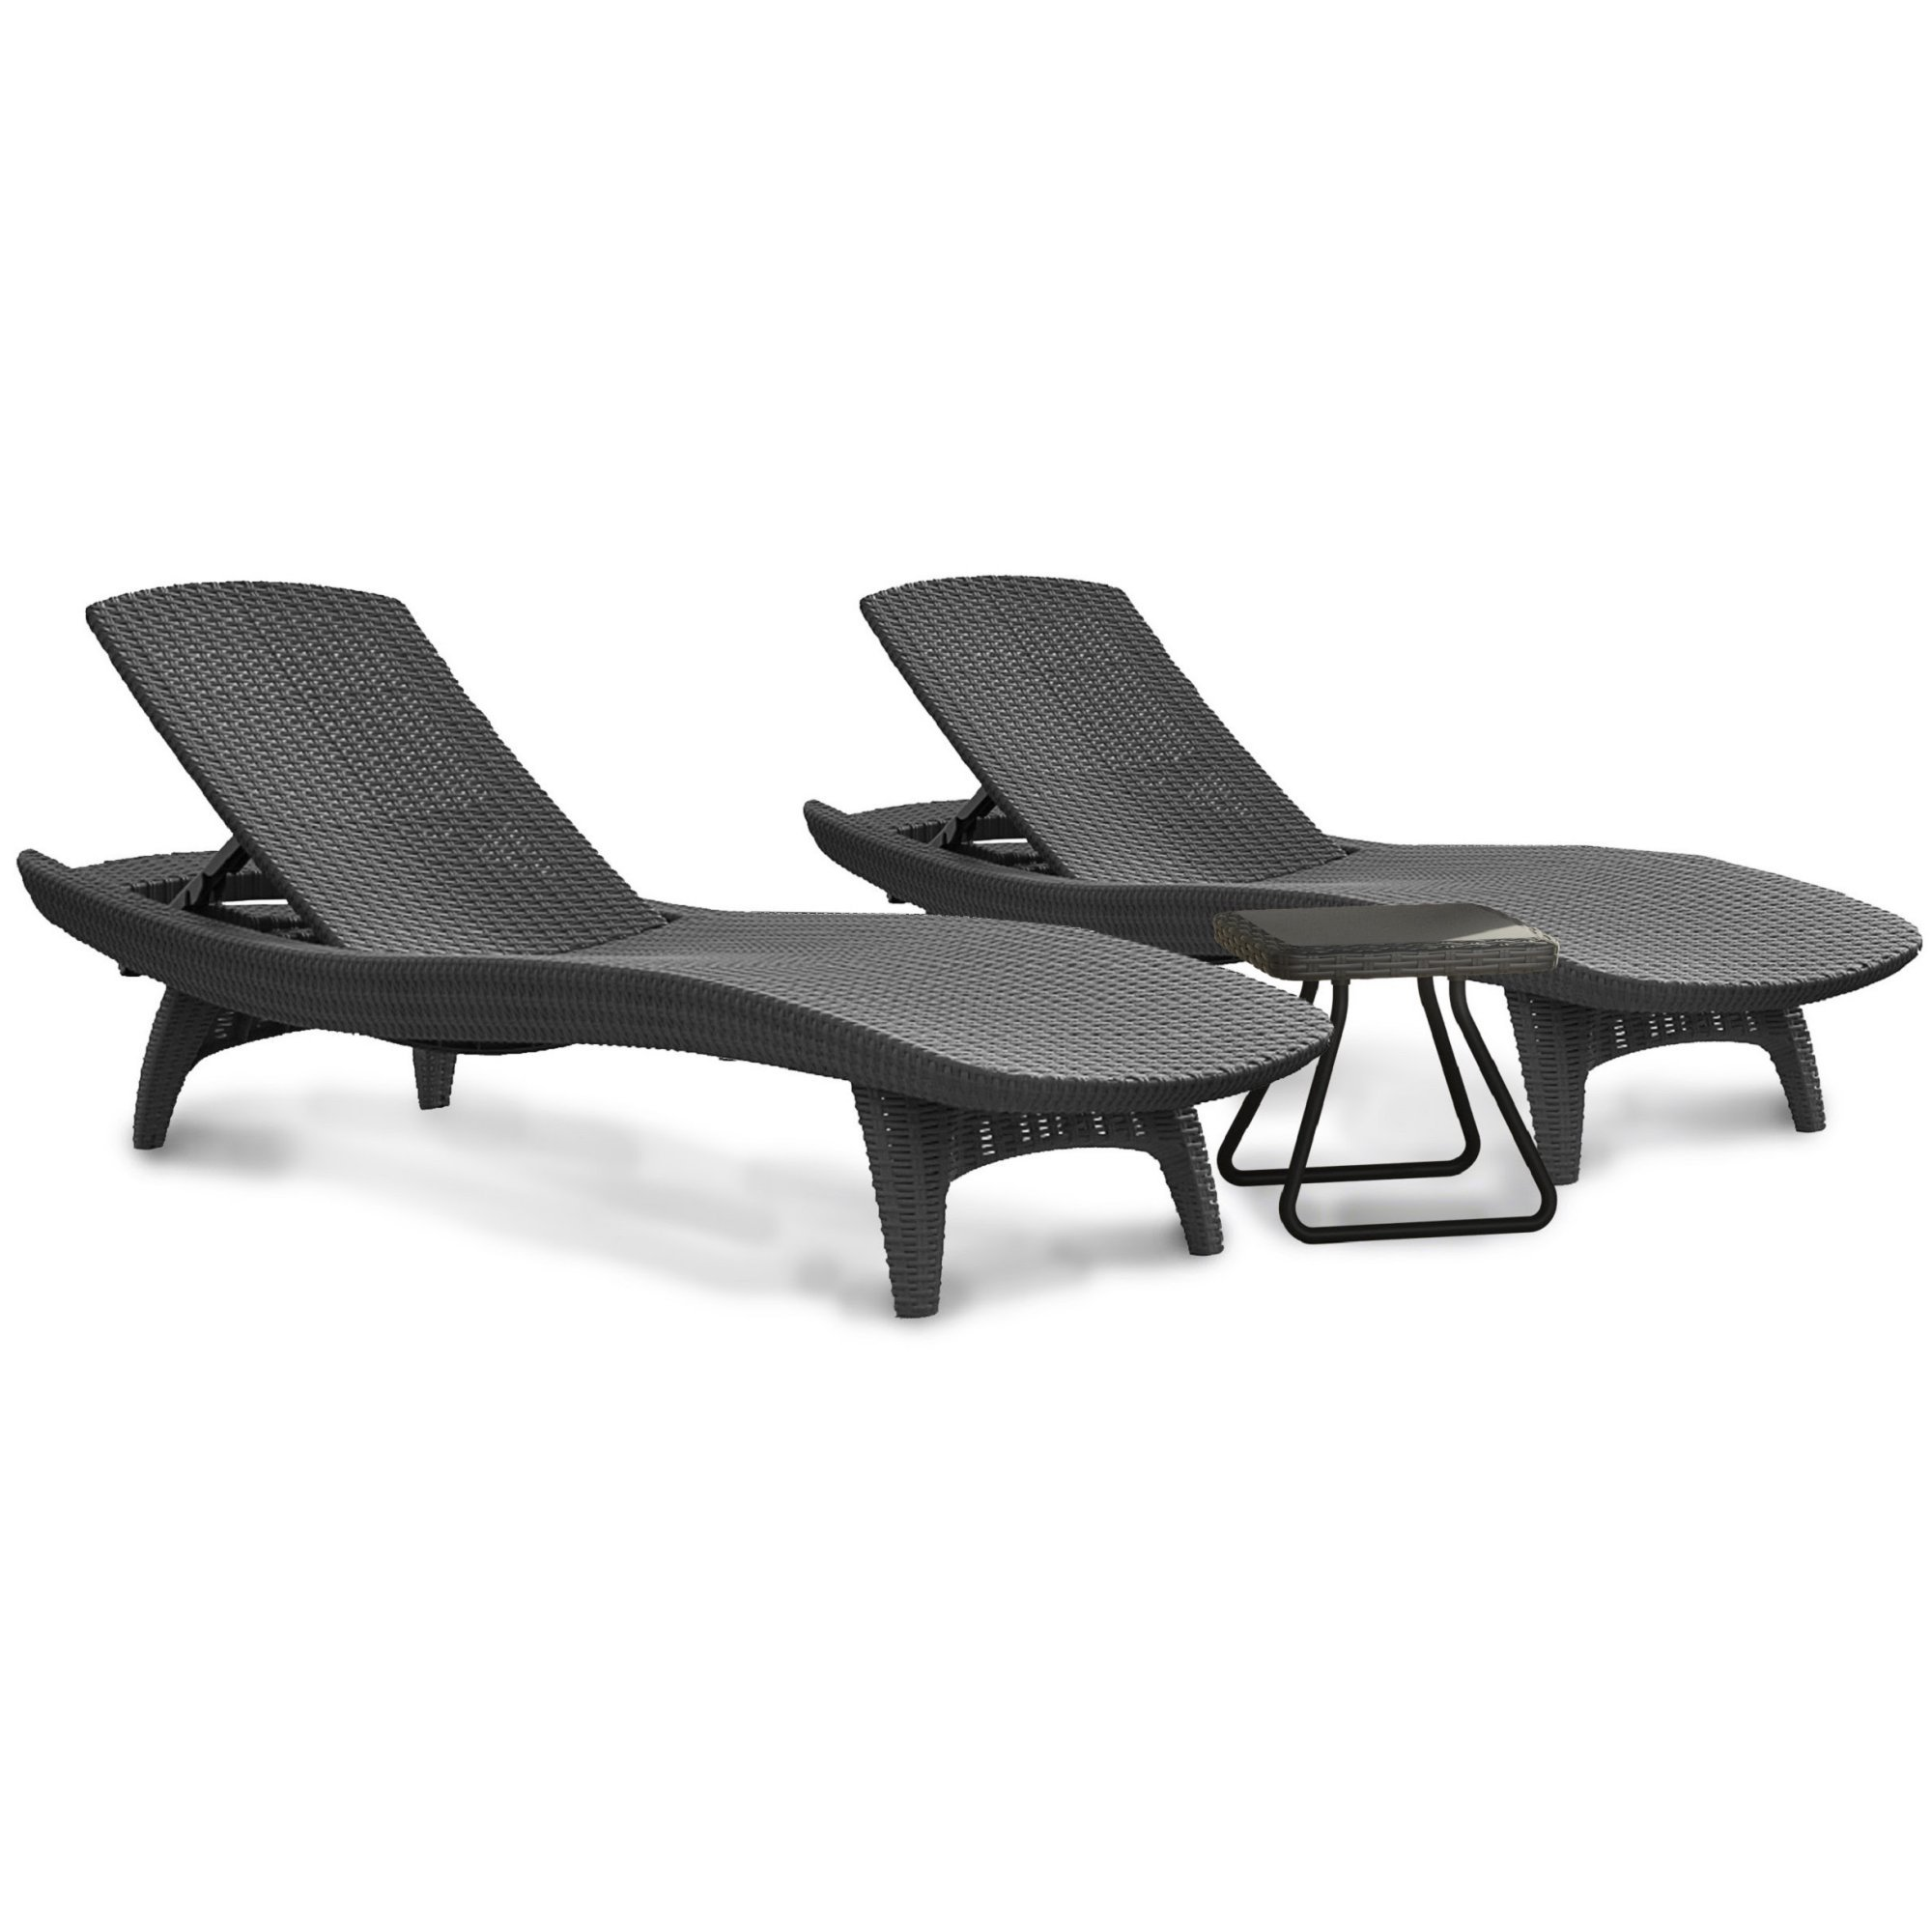 Set of 2 Loungers and Side Table Textured Rattan Design Rust Proof All Weather Polypropylene Resin Furniture and Décor Home Living Room Interior Style Design Gray Charcoal